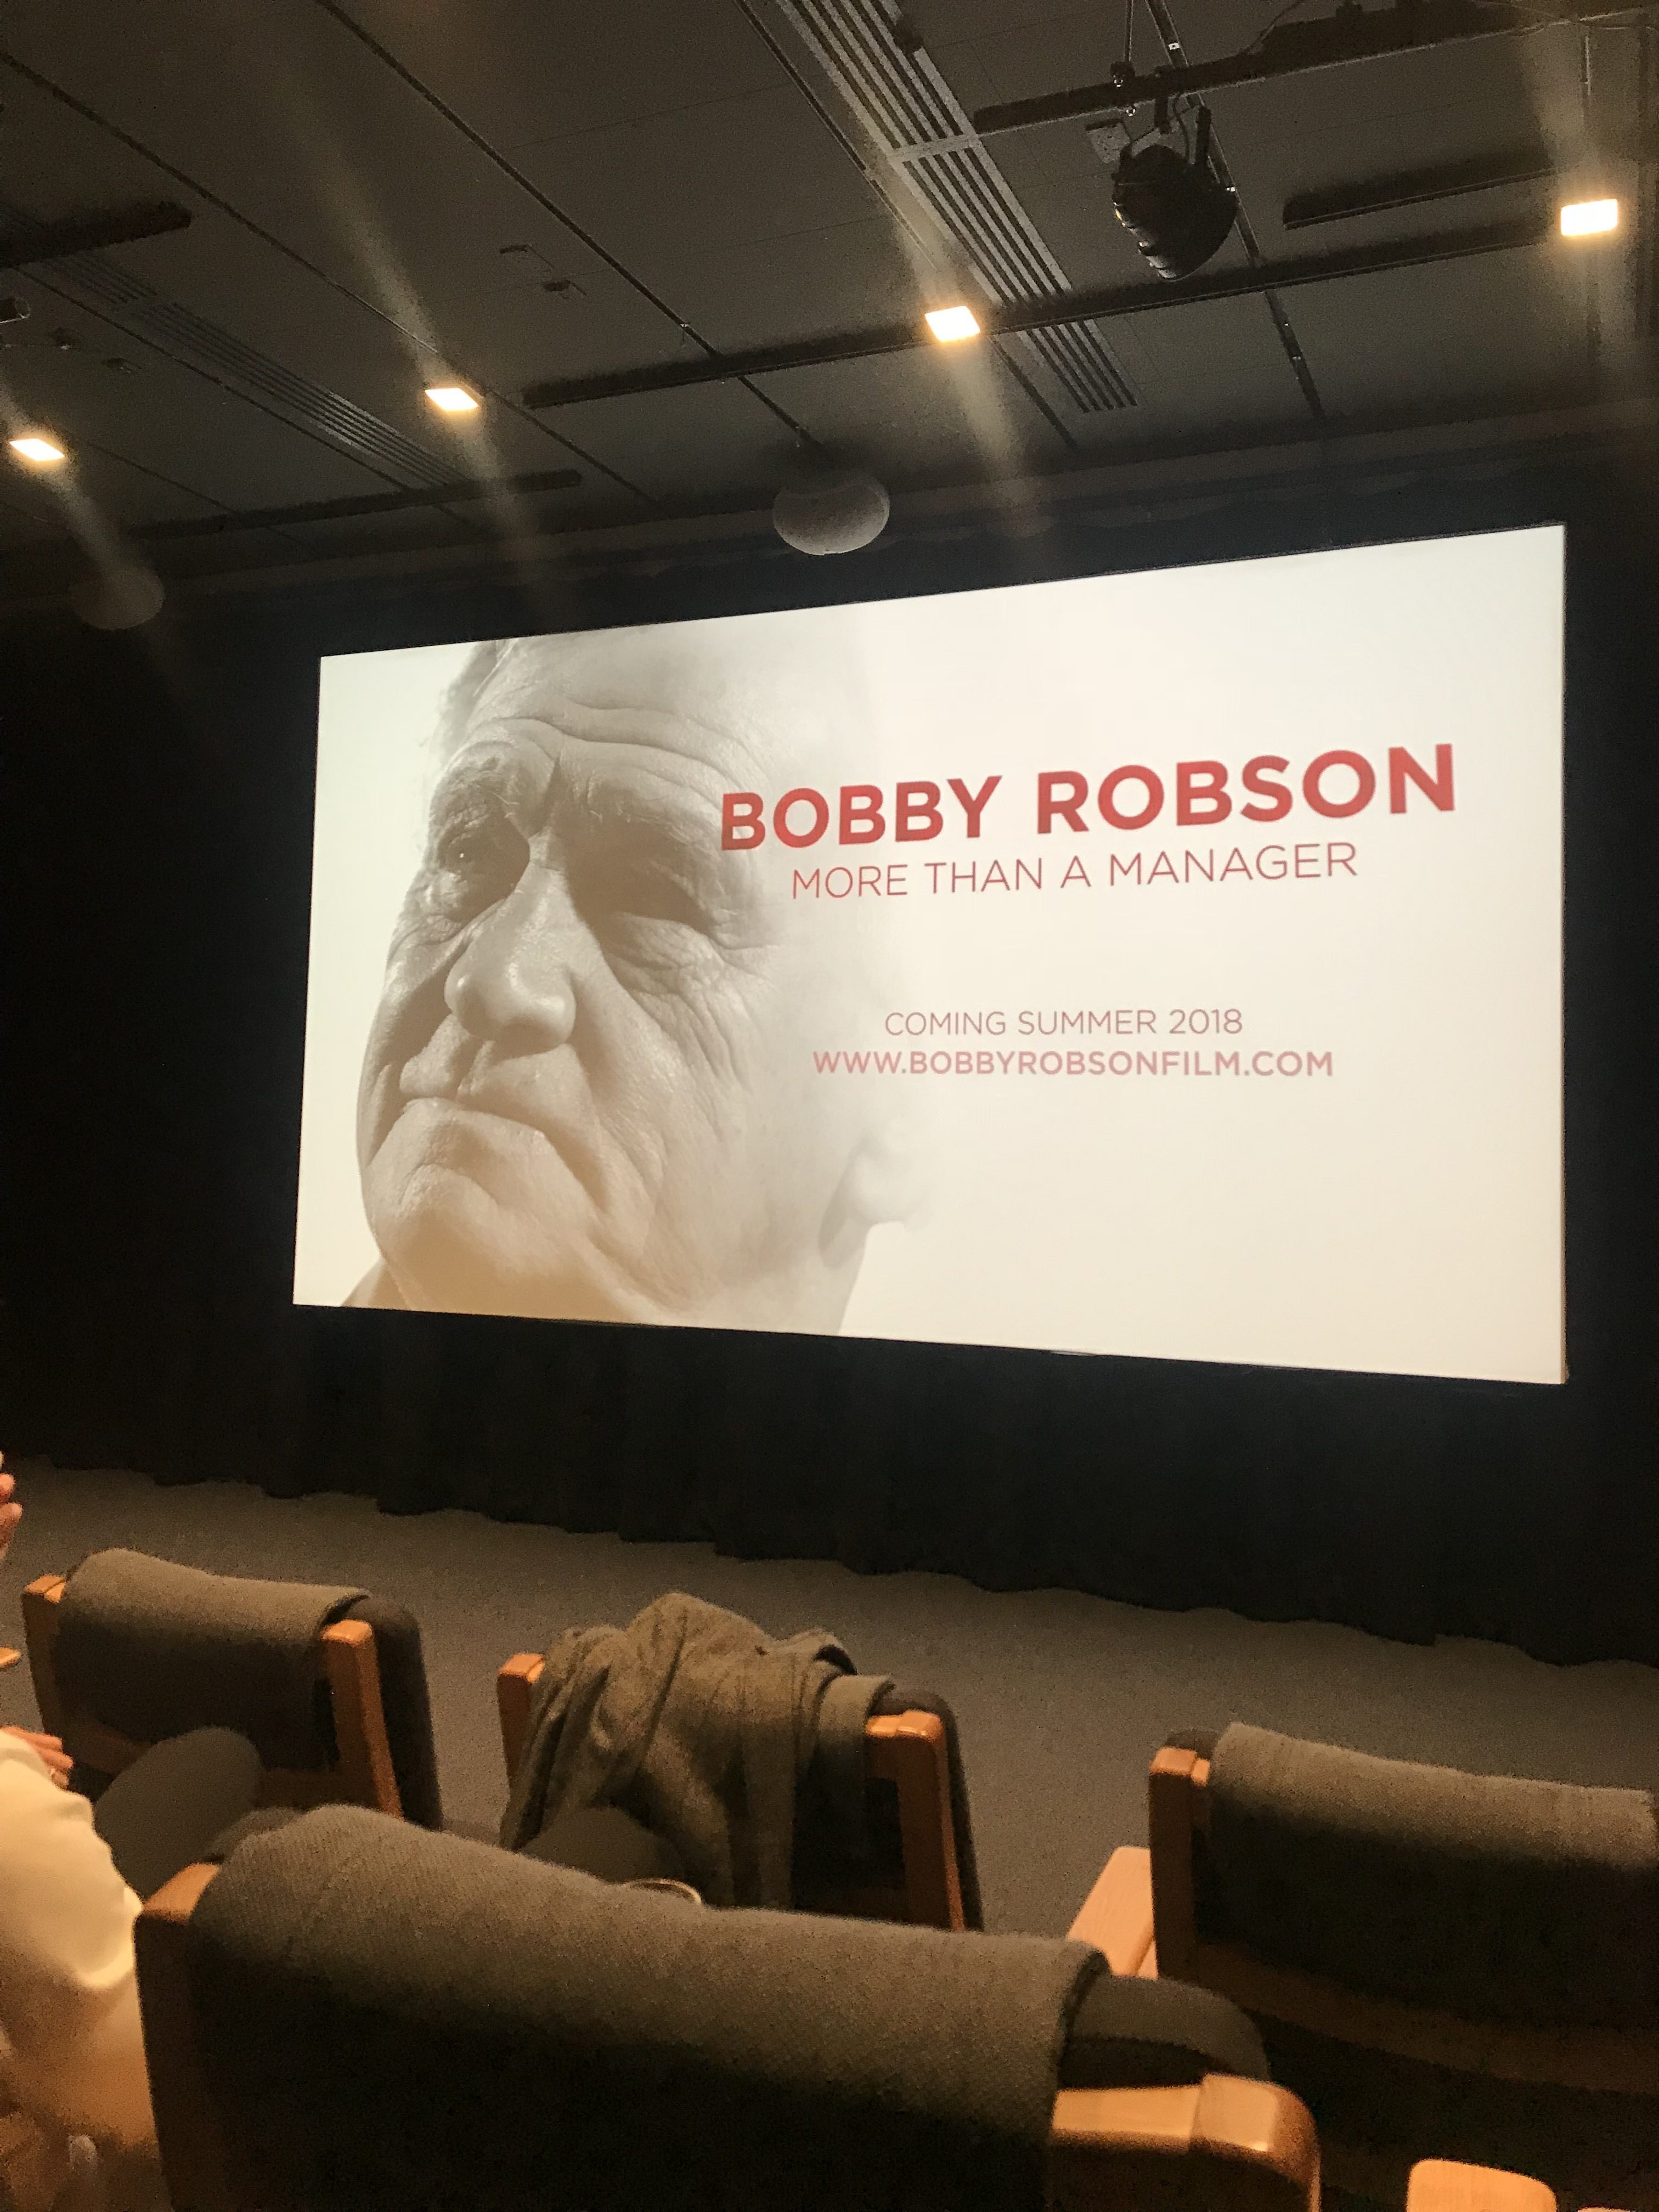 Bobby Robson Film - More than a Manager | Football Documentary about Sir Bobby's life at Barcelona FC, PSV, the England Manager role, and returning to Newcastle United | Elle Blonde Luxury Lifestyle Destination Blog